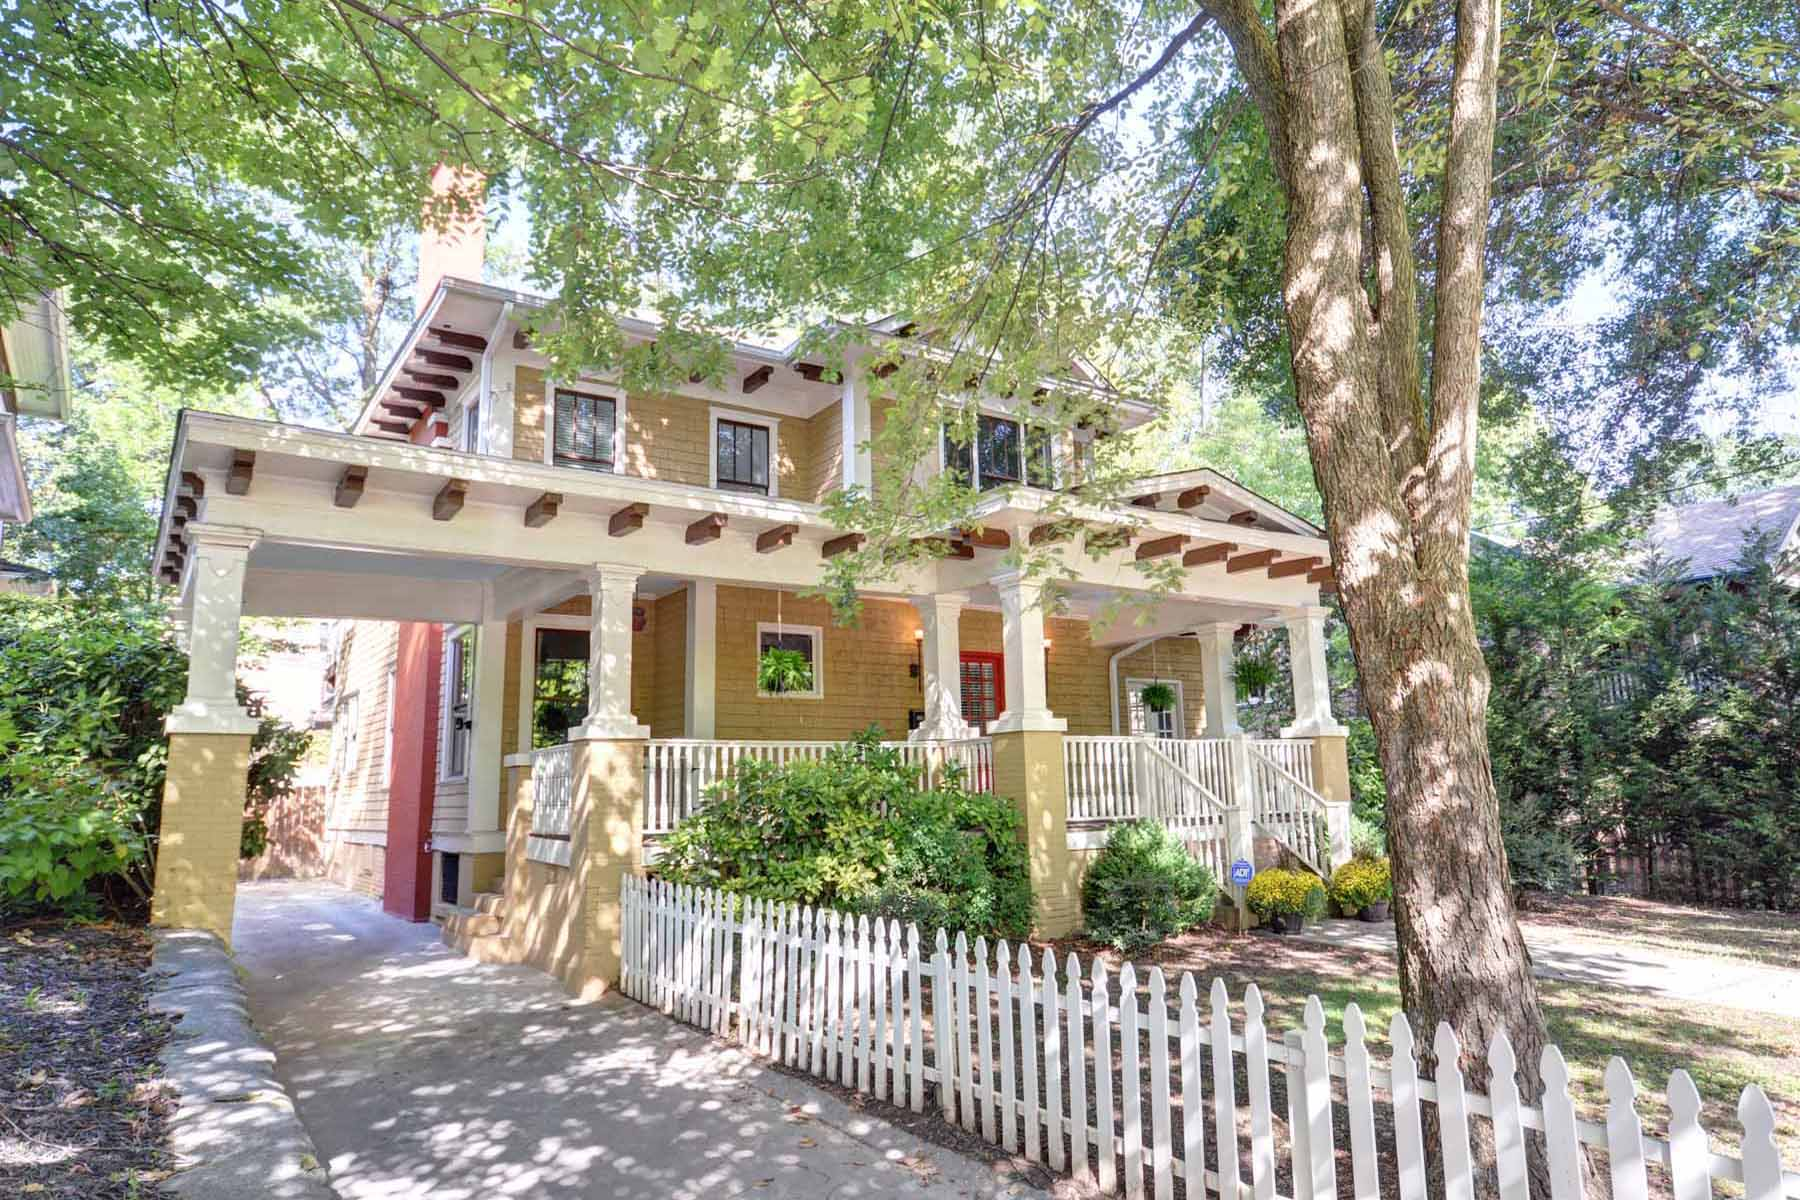 Single Family Home for Sale at Completely Renovated Historic Midtown Home 698 Myrtle Street Midtown, Atlanta, Georgia, 30308 United States